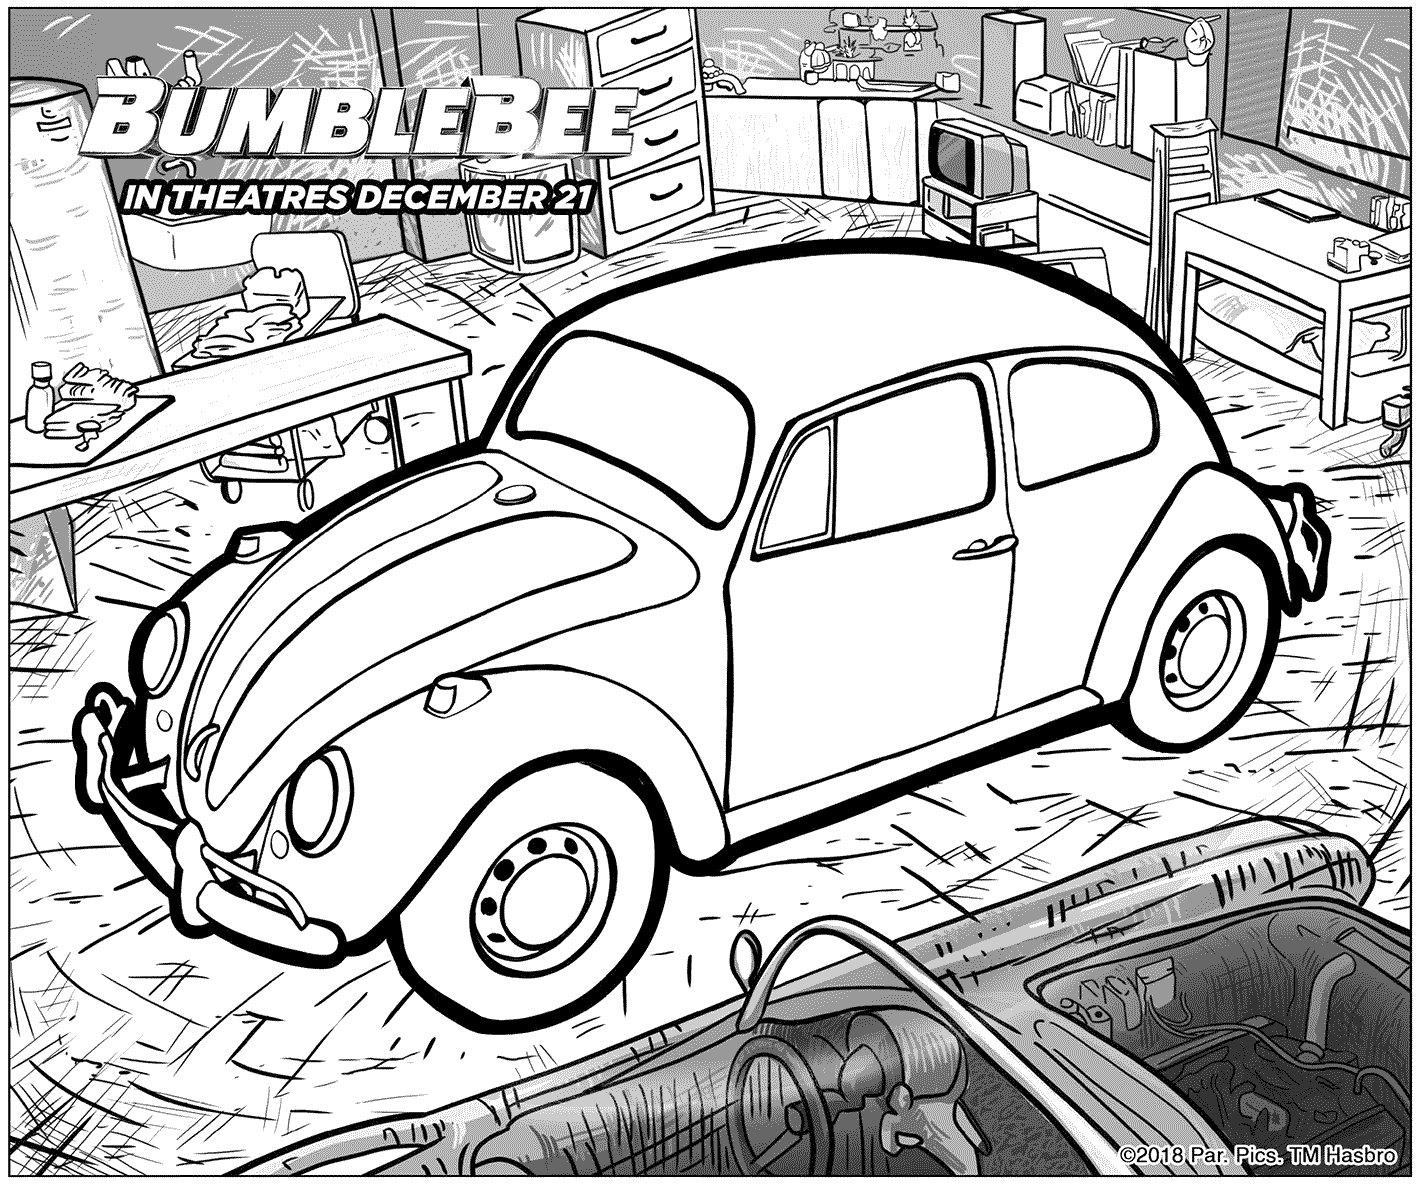 Bumblebee Coloring Pages Best Coloring Pages For Kids in